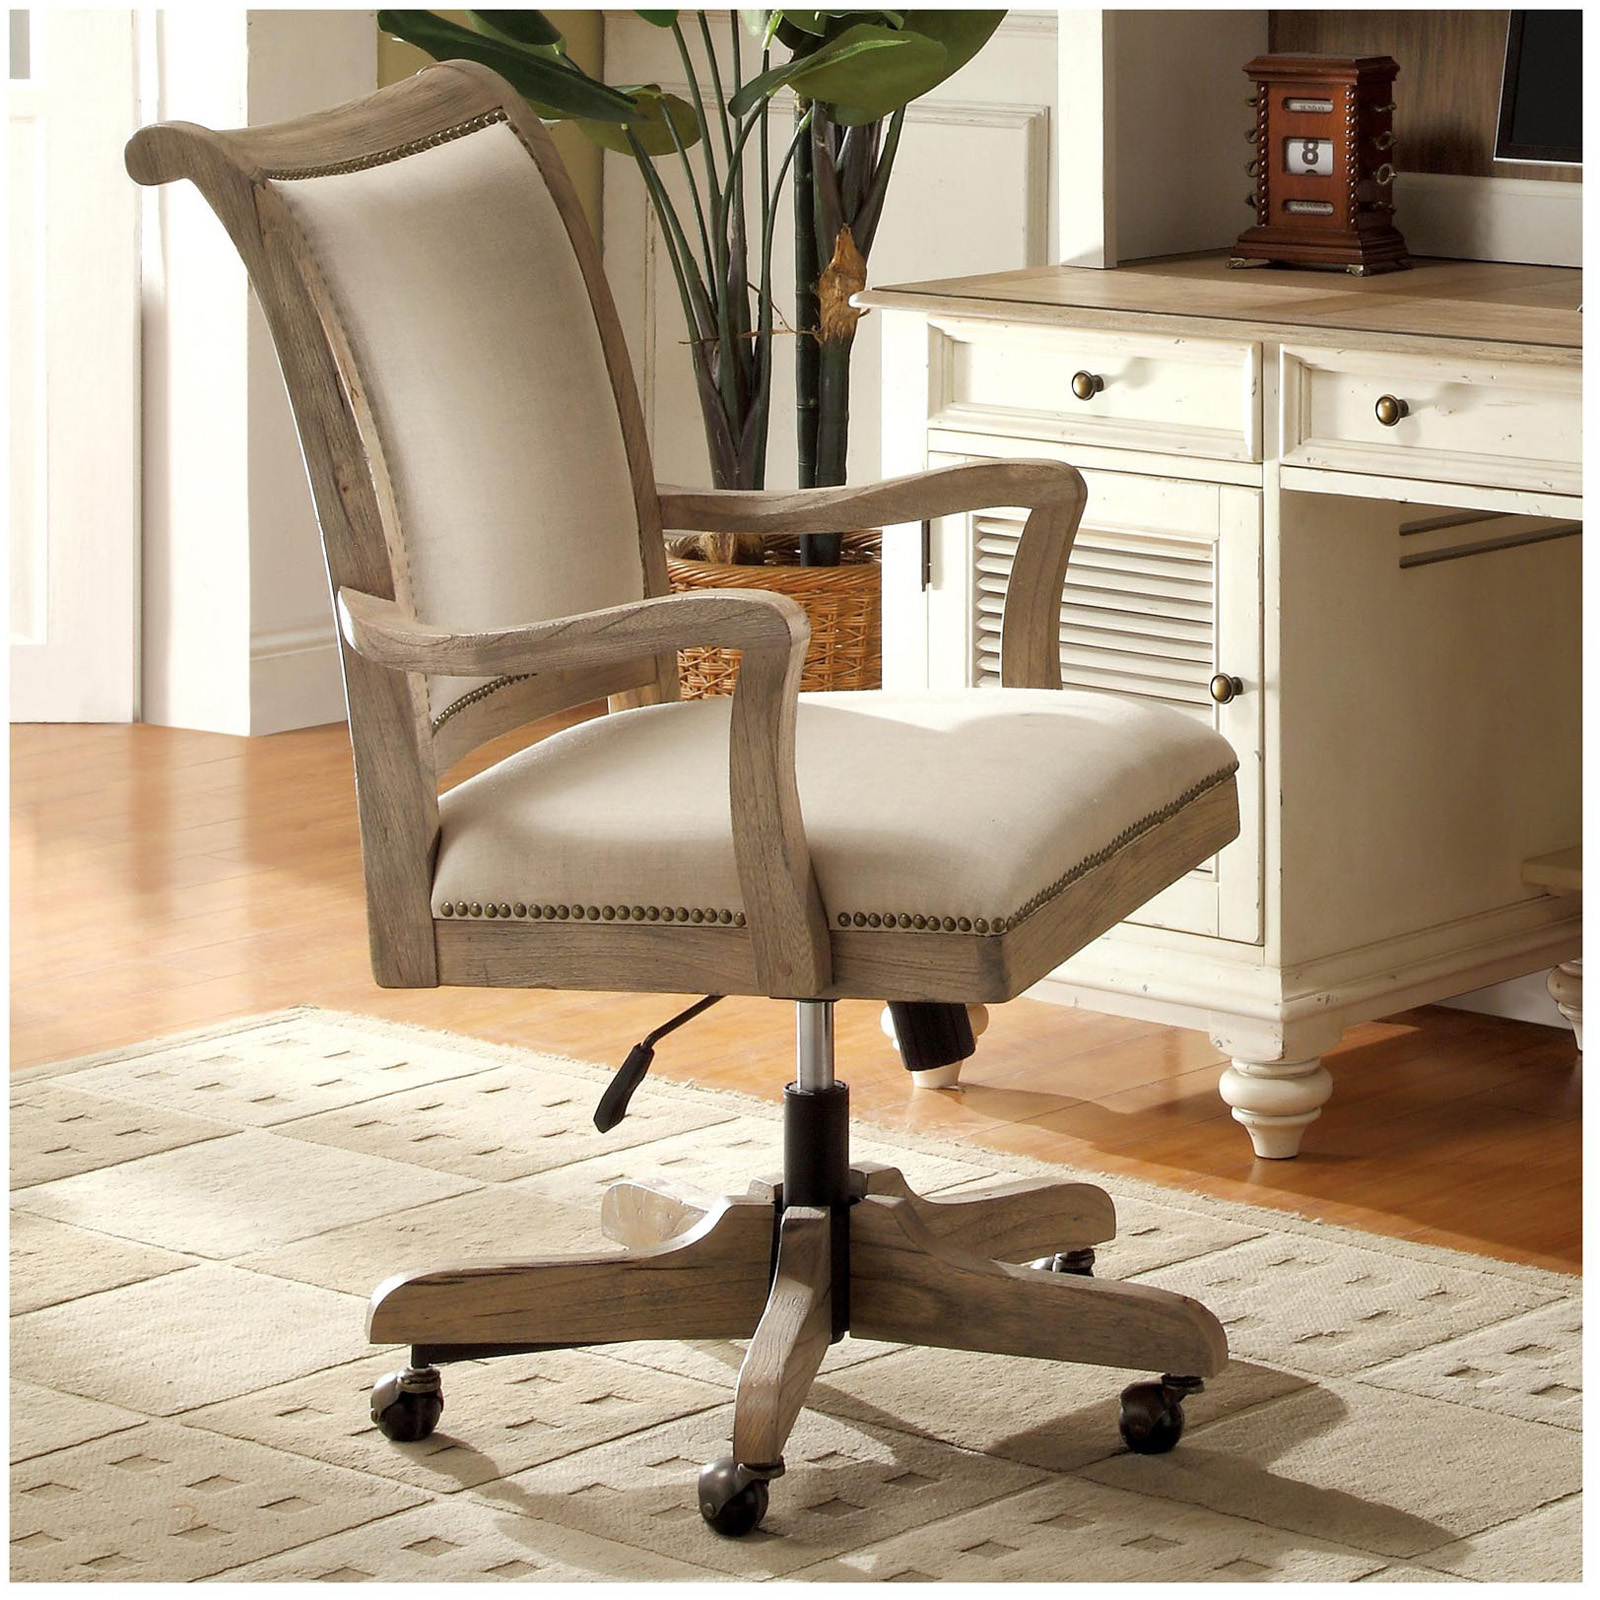 with collections furniture fabric design home chairs upholstery additional amazing office fa chair upholstered interior